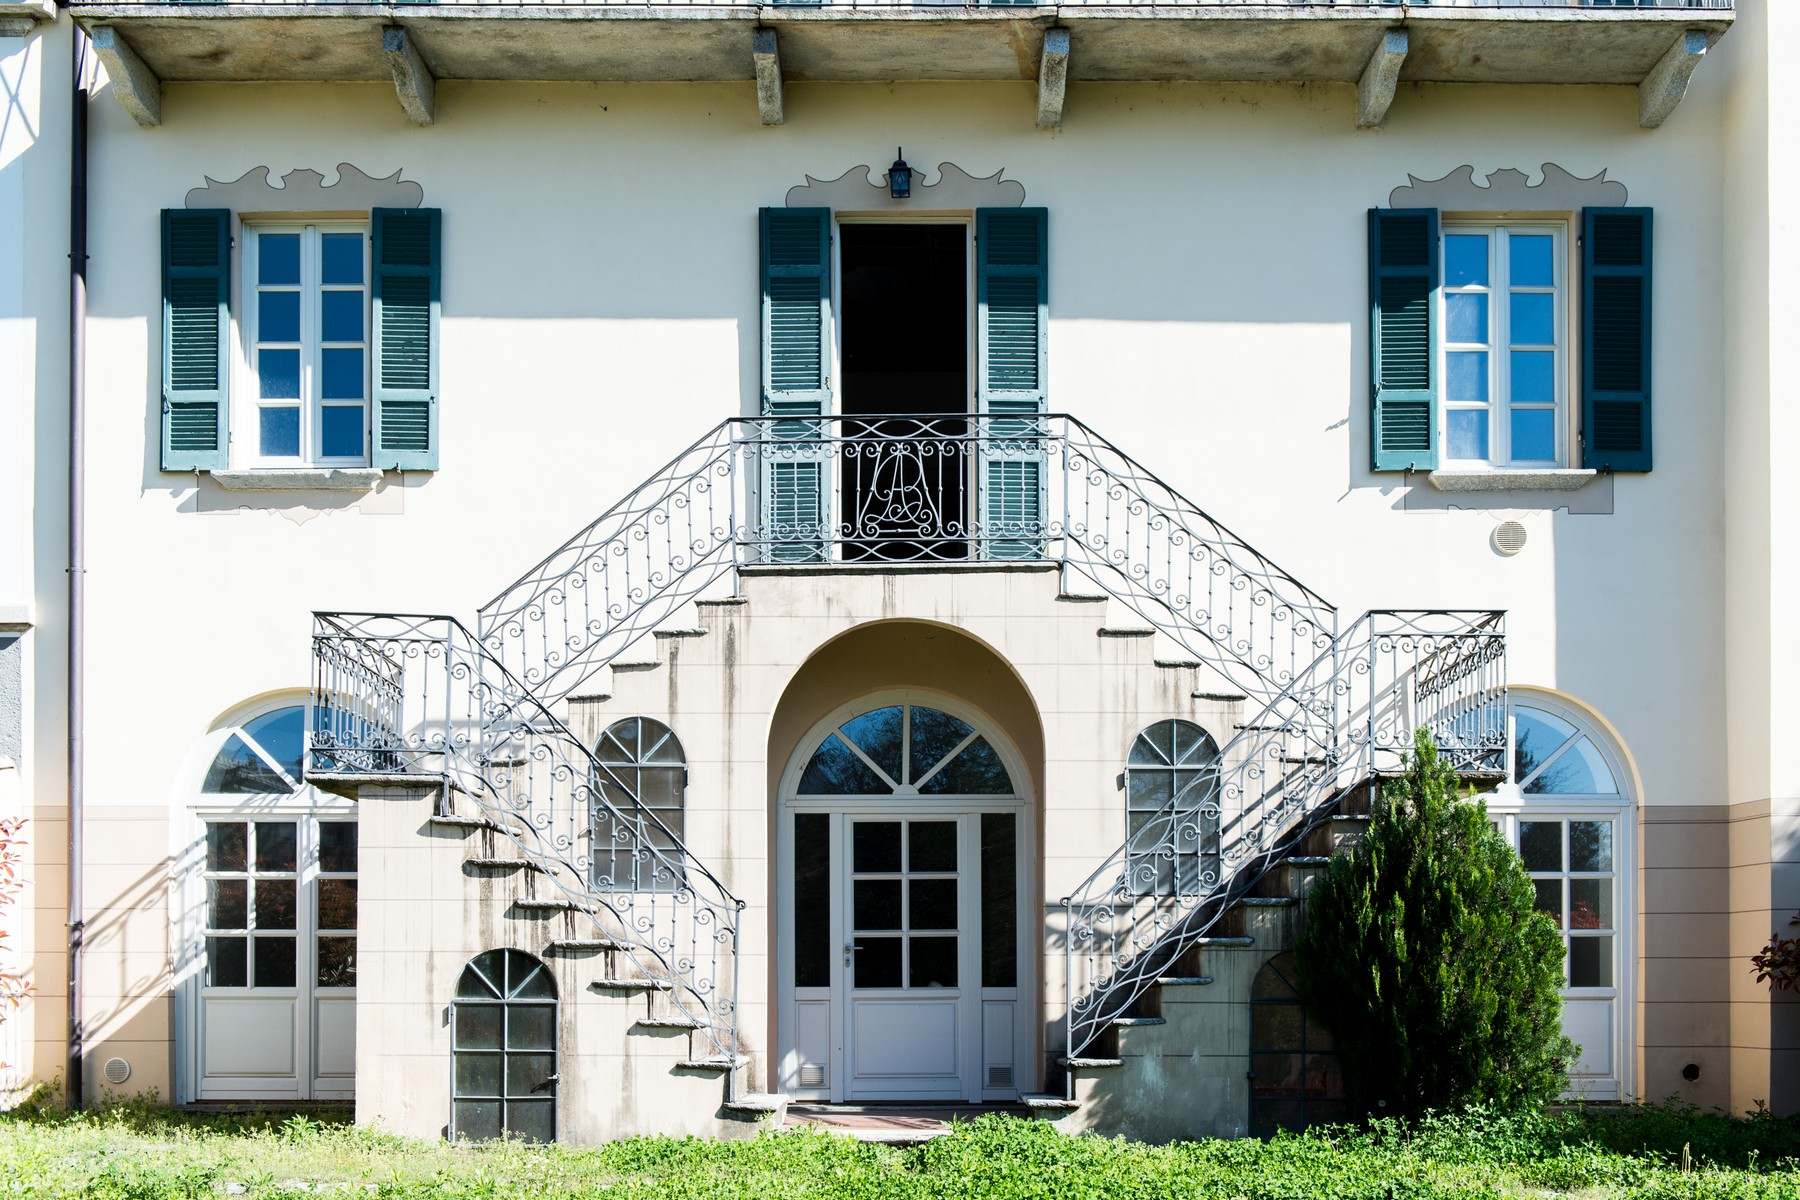 Single Family Home for Sale at Elegant beautifully renovated historical building Via A. Manzoni Luino, Varese 21016 Italy